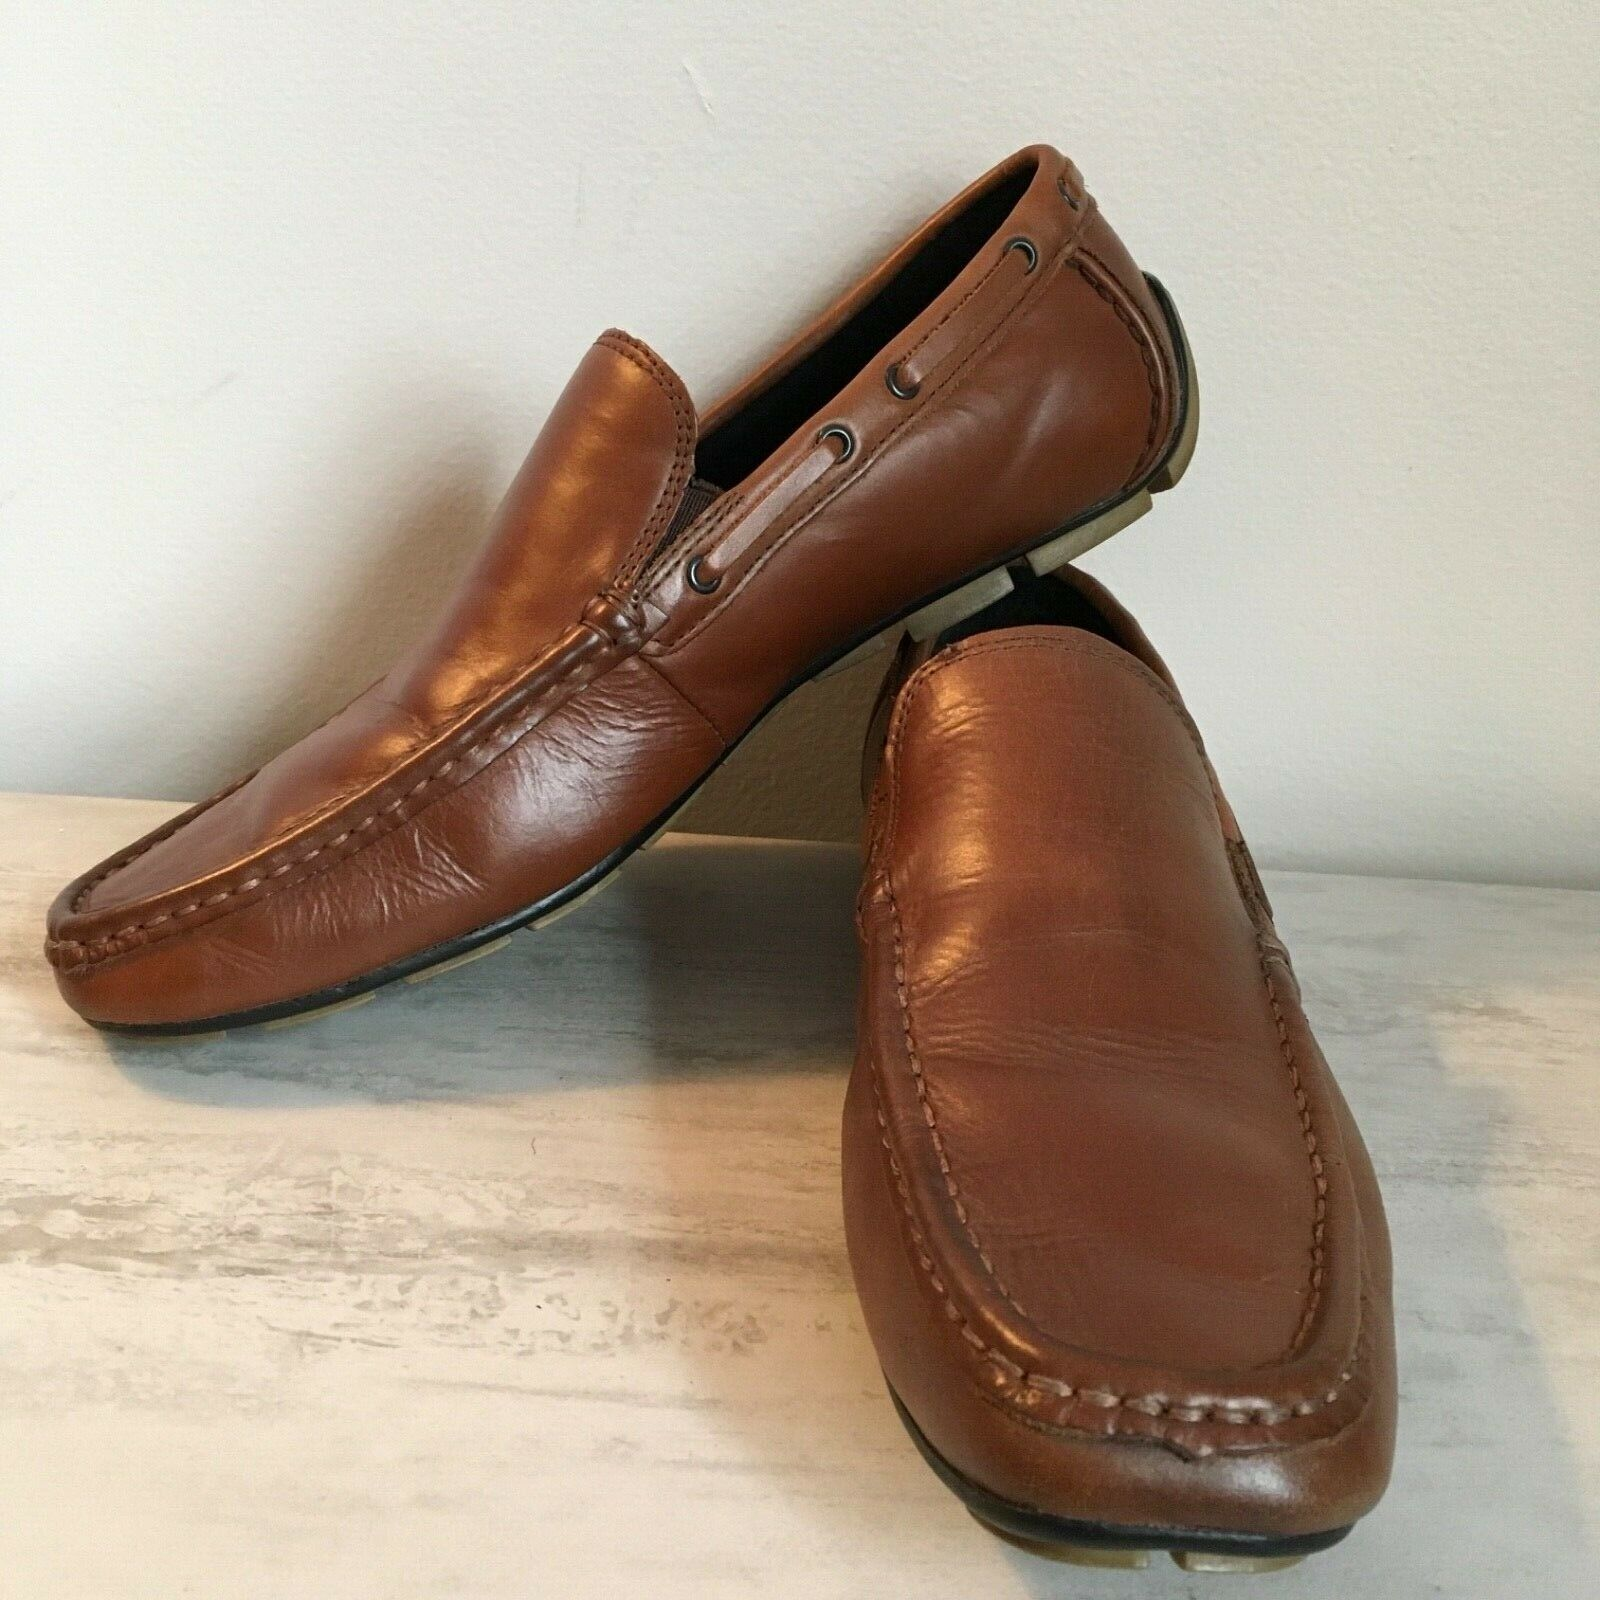 Kenneth Cole Reaction Traffic Light Brown Men Driving Shoes Loafers Leather 9M